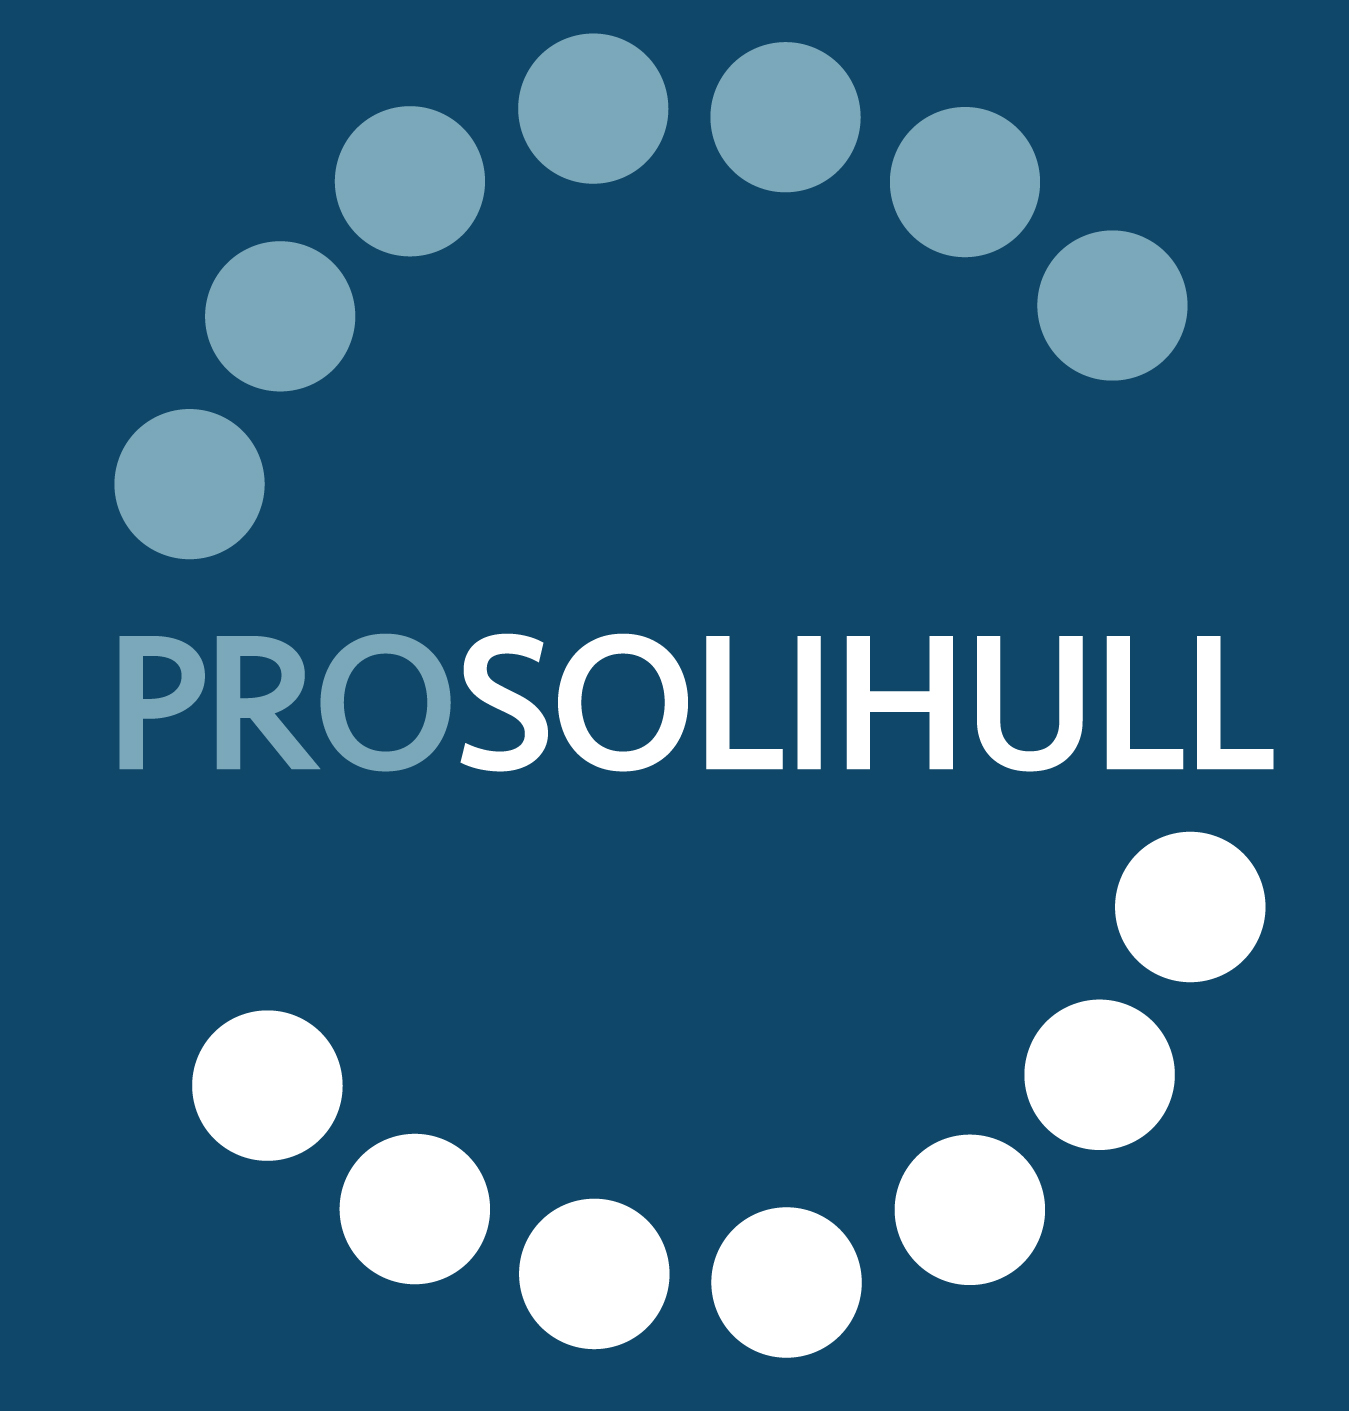 Pro Solihull - Solihull Professionals group - Solihull Chamber of Commerce